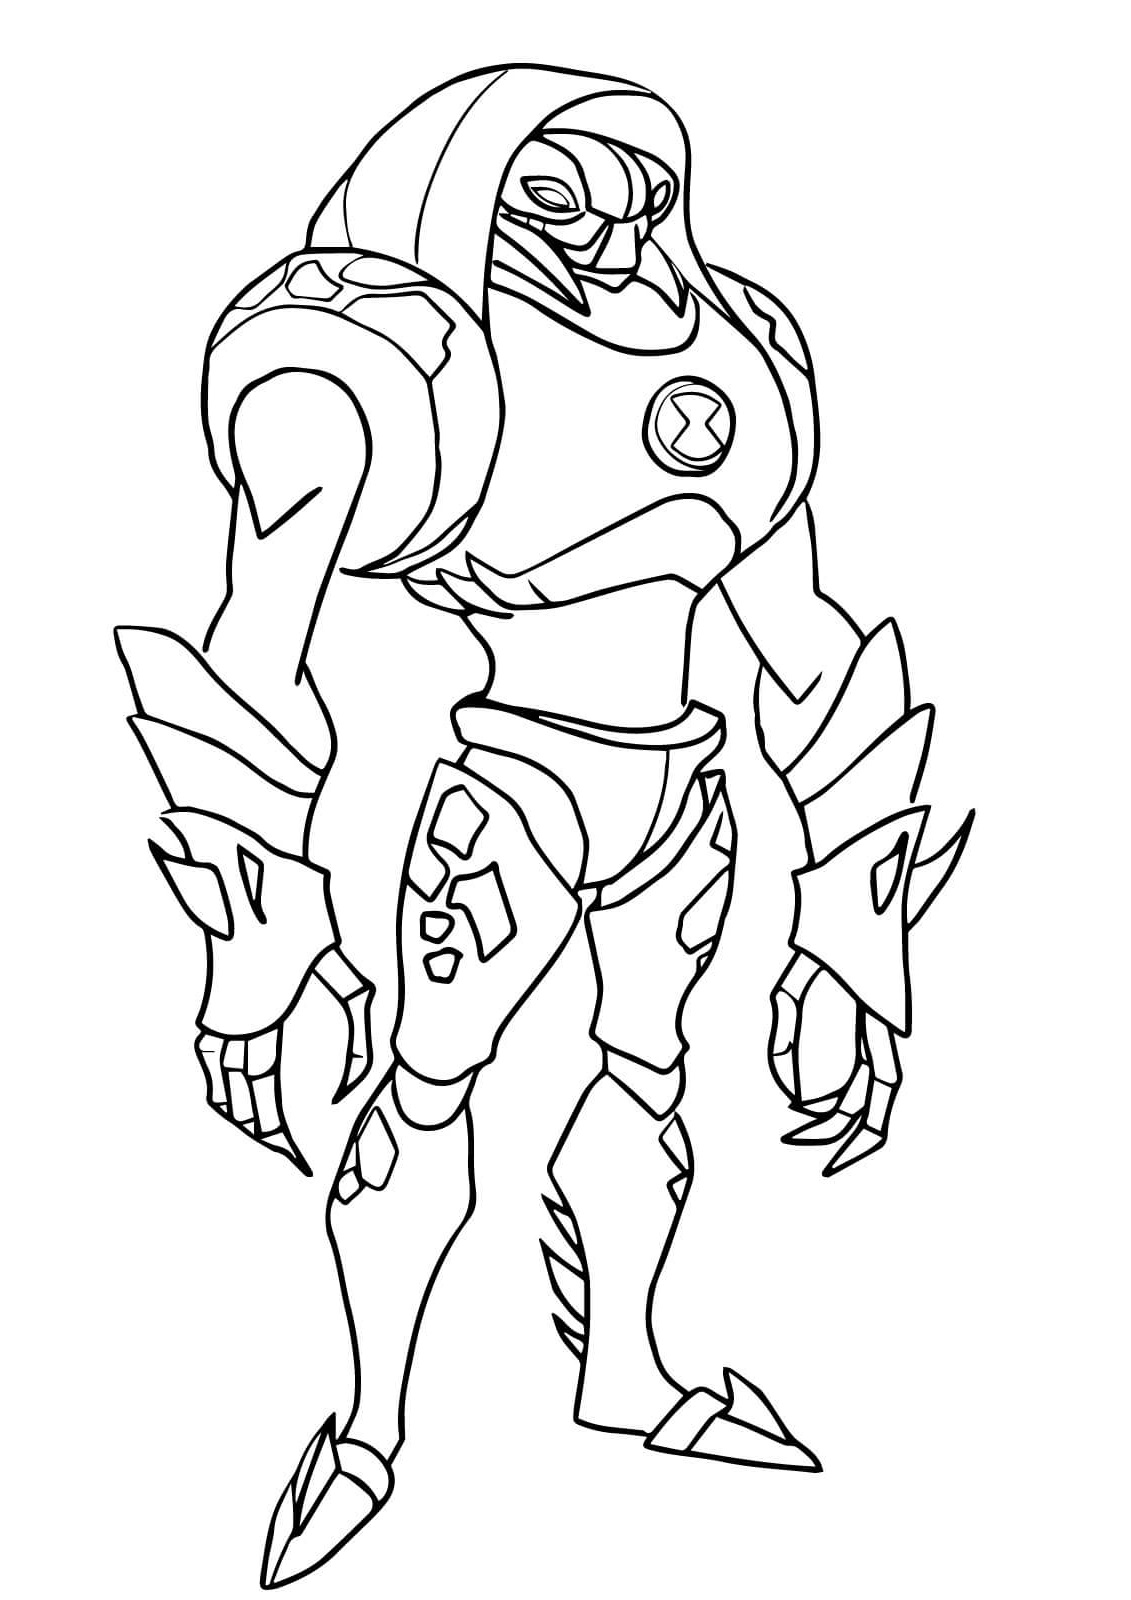 Ben 10 Coloring Pages For Students